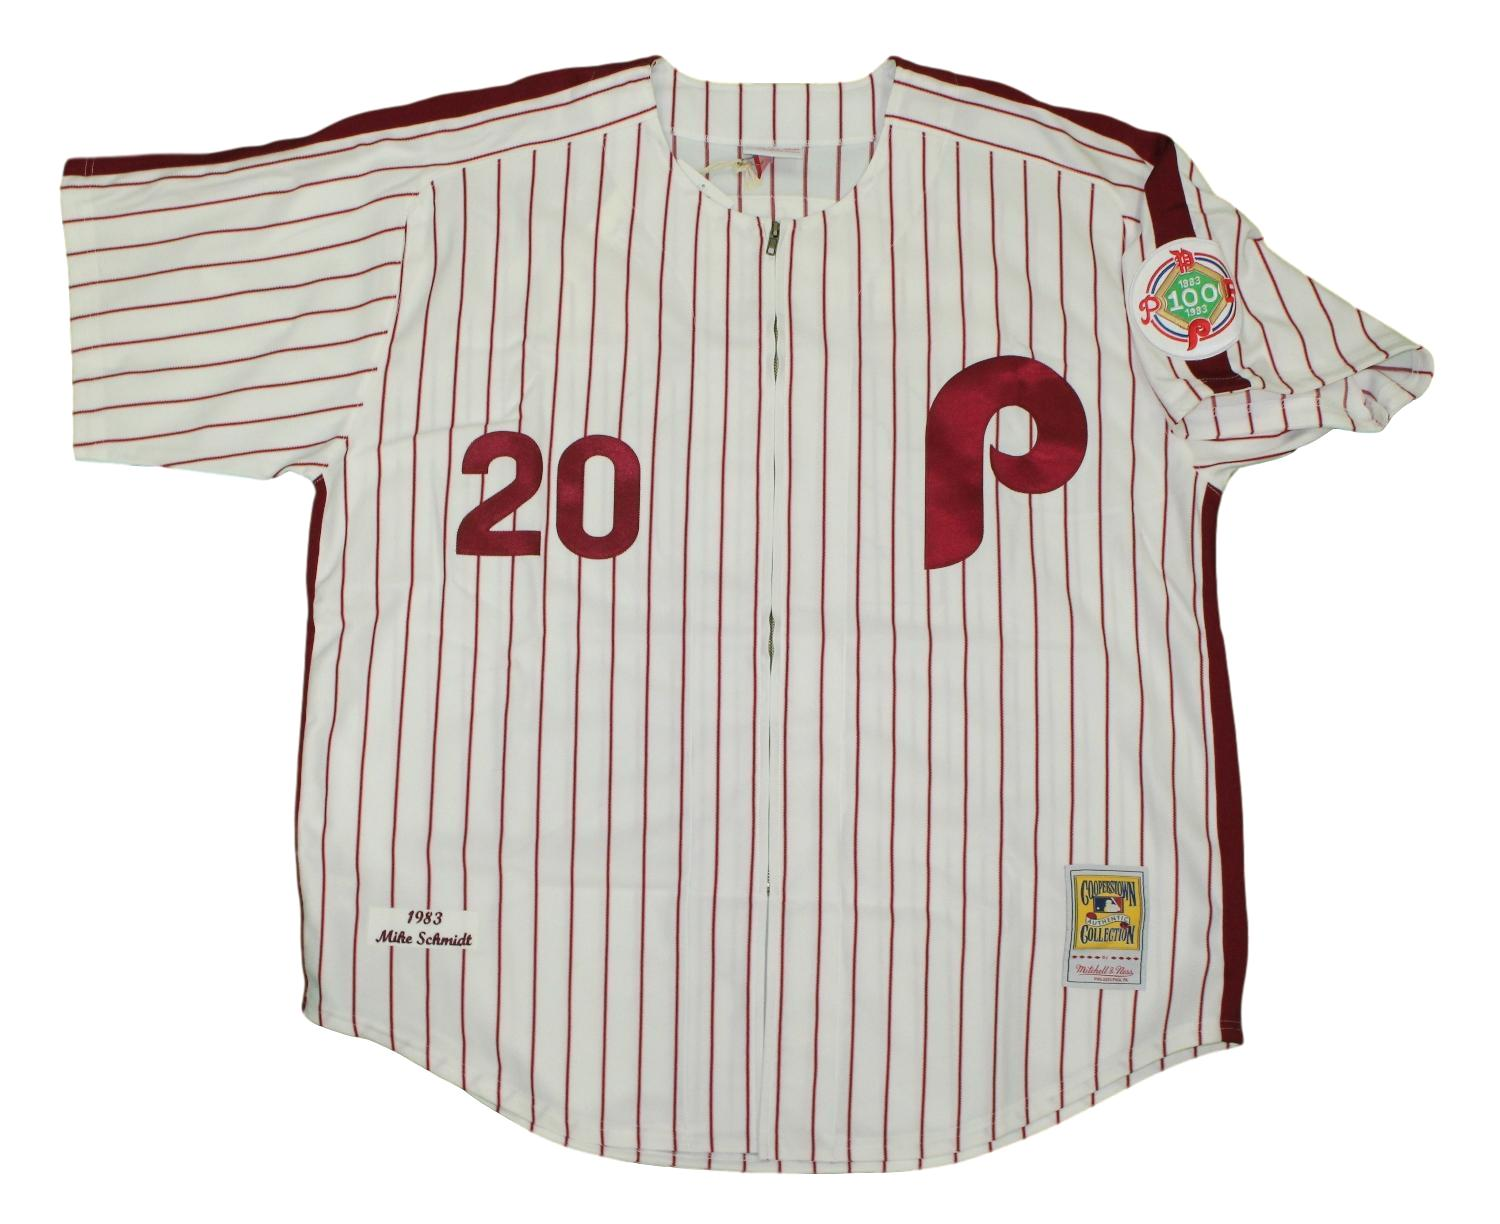 Mike Schmidt Philadelphia Phillies Mitchell & Ness MLB Authentic 1983 Jersey